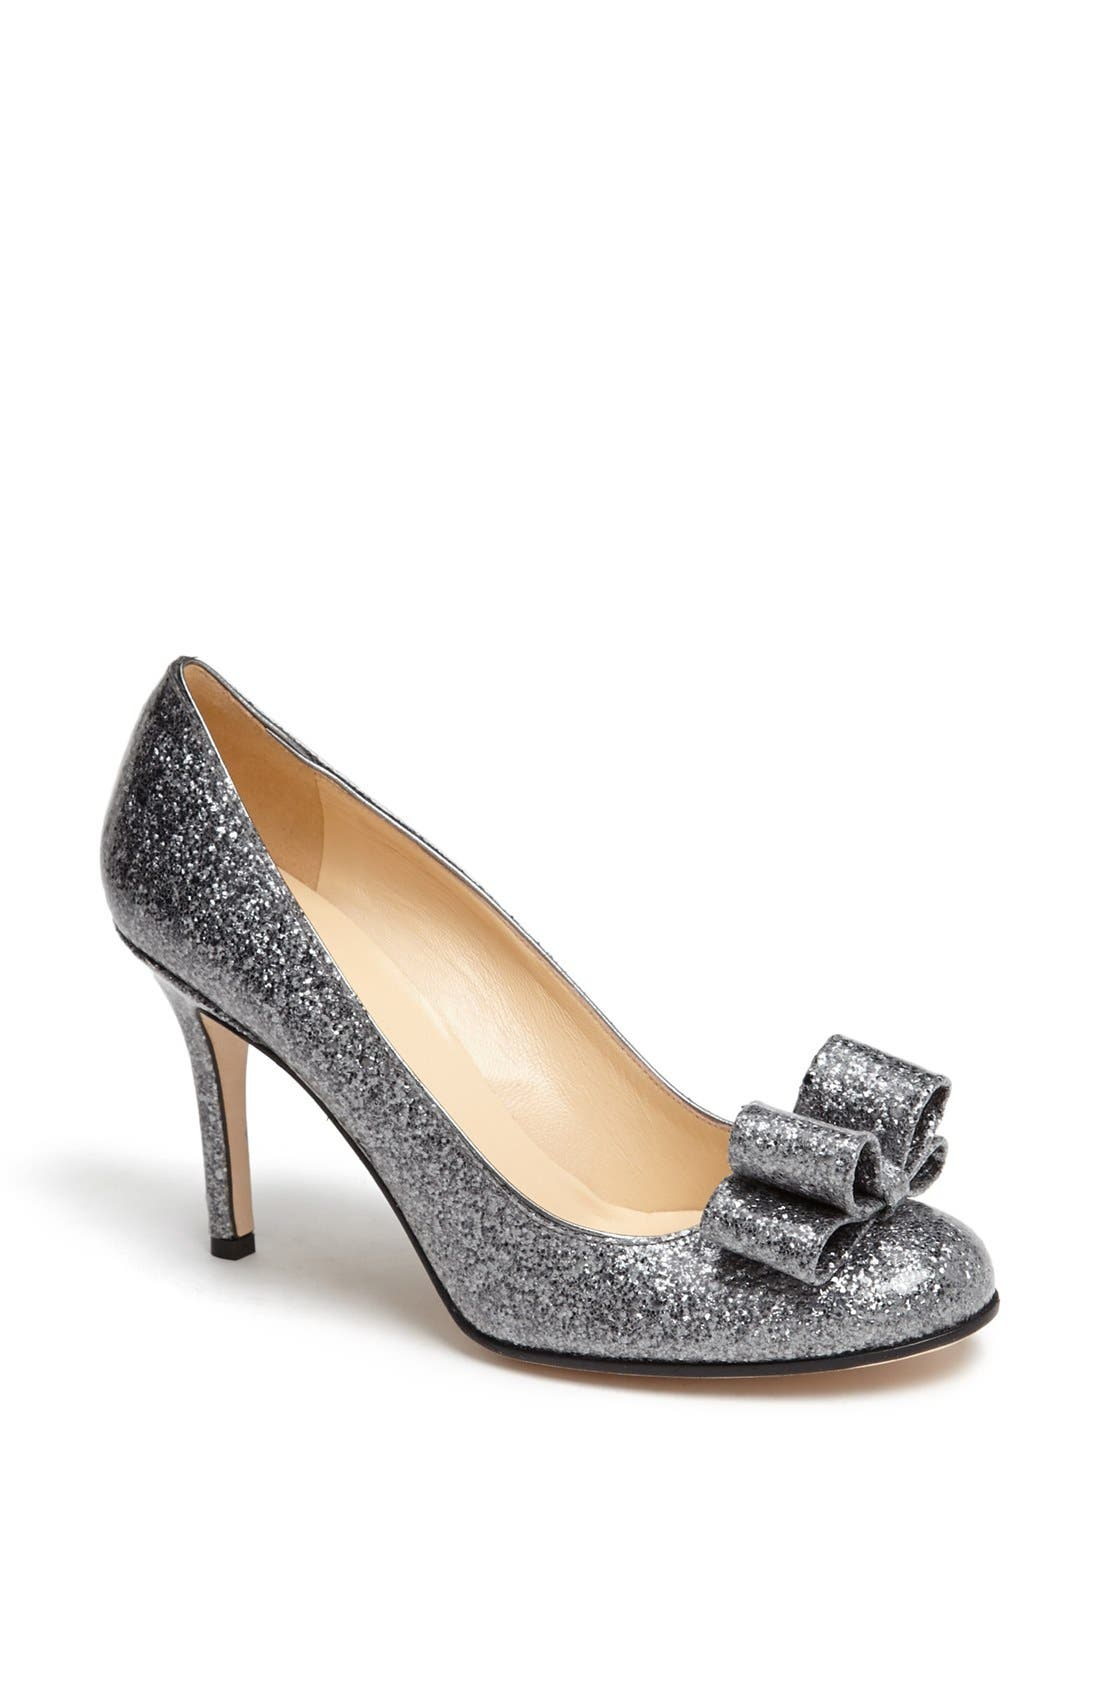 Main Image - kate spade new york 'krysta' pump